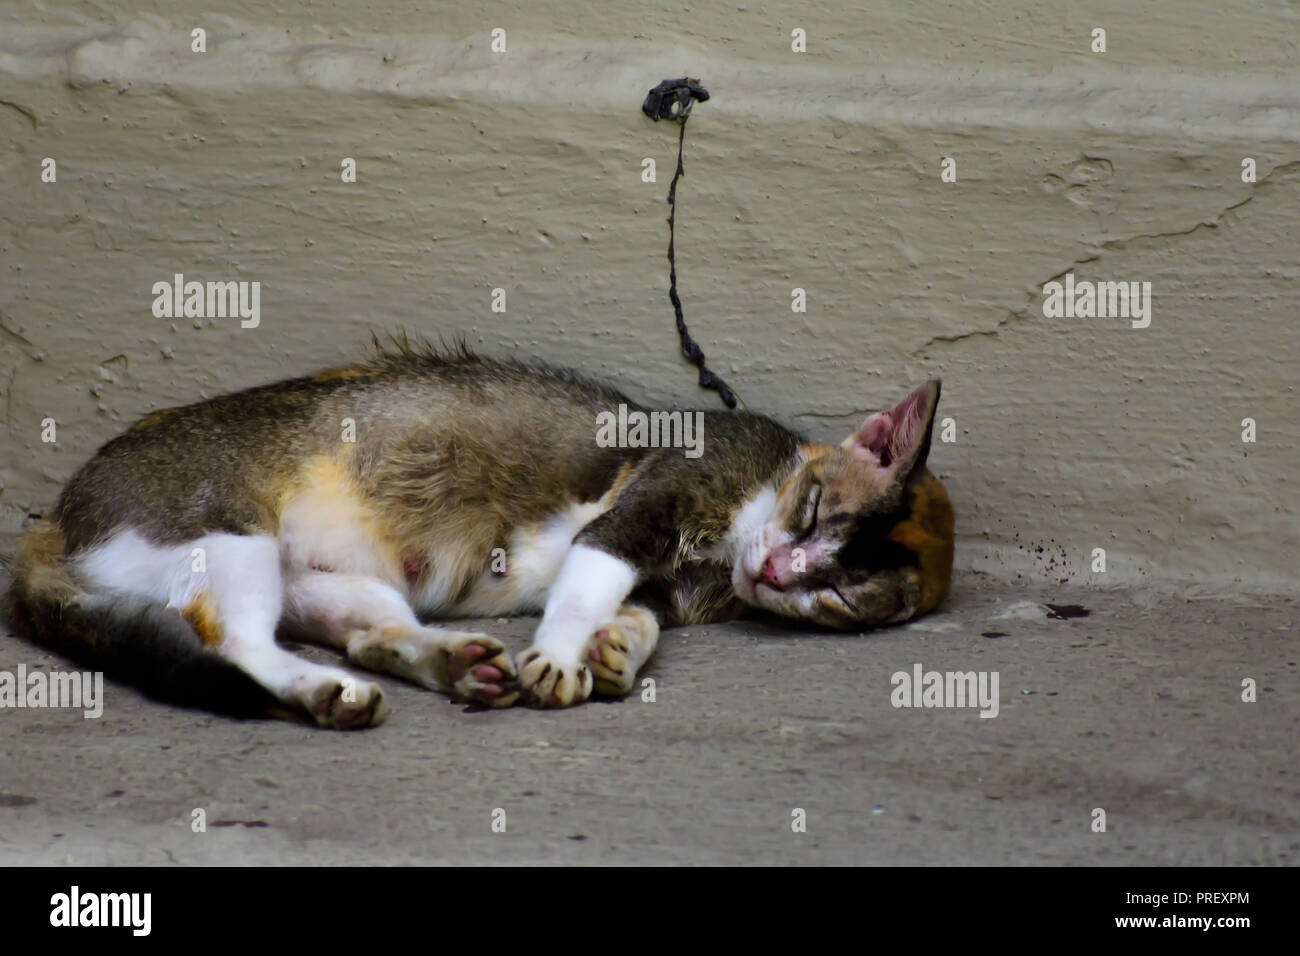 portrait of a beautiful fluffy cat sleeping and relaxing - Stock Image